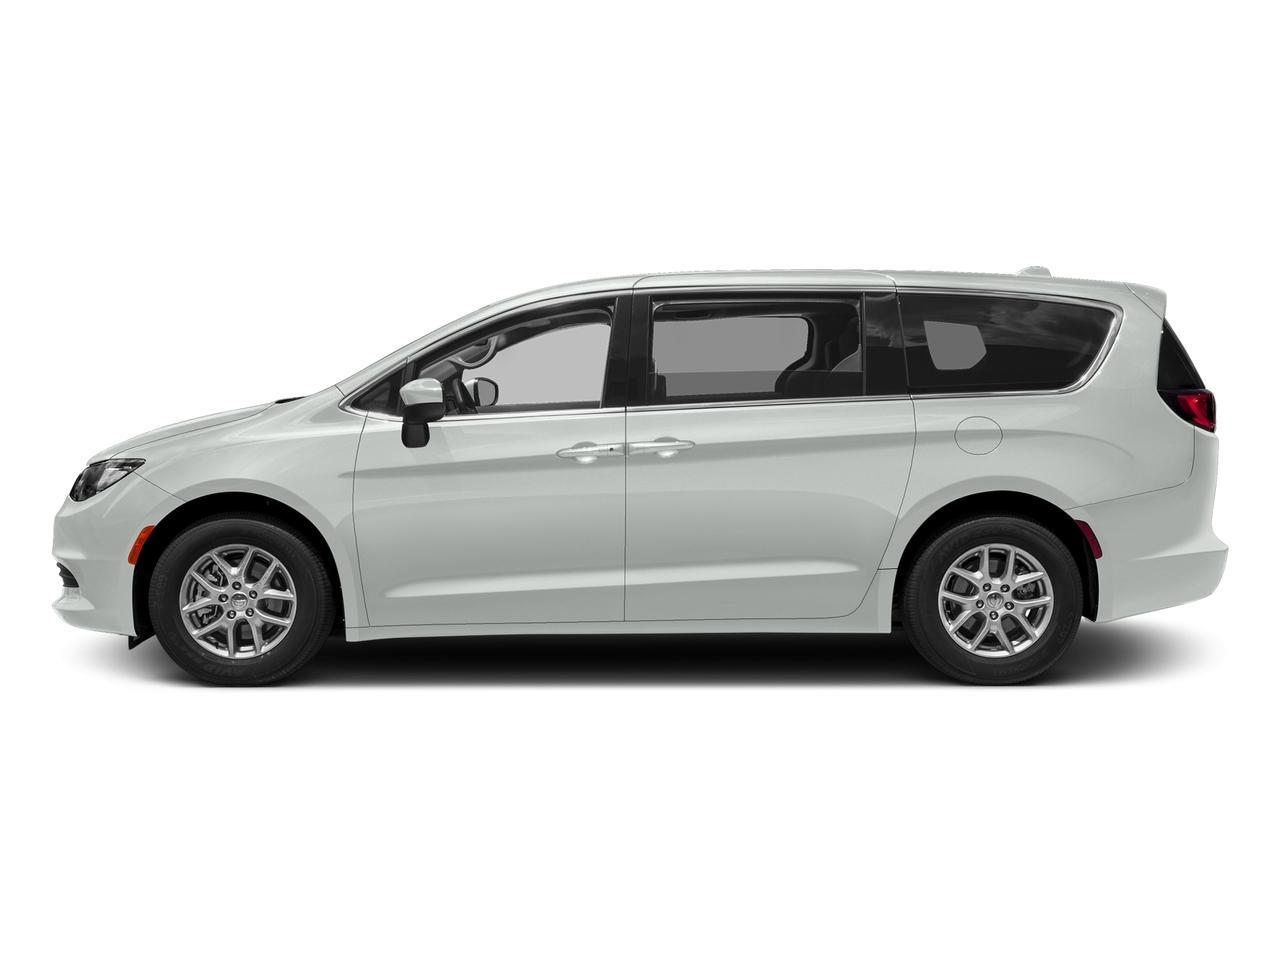 Used 2017 Chrysler Pacifica Touring with VIN 2C4RC1DG1HR695179 for sale in Willmar, Minnesota